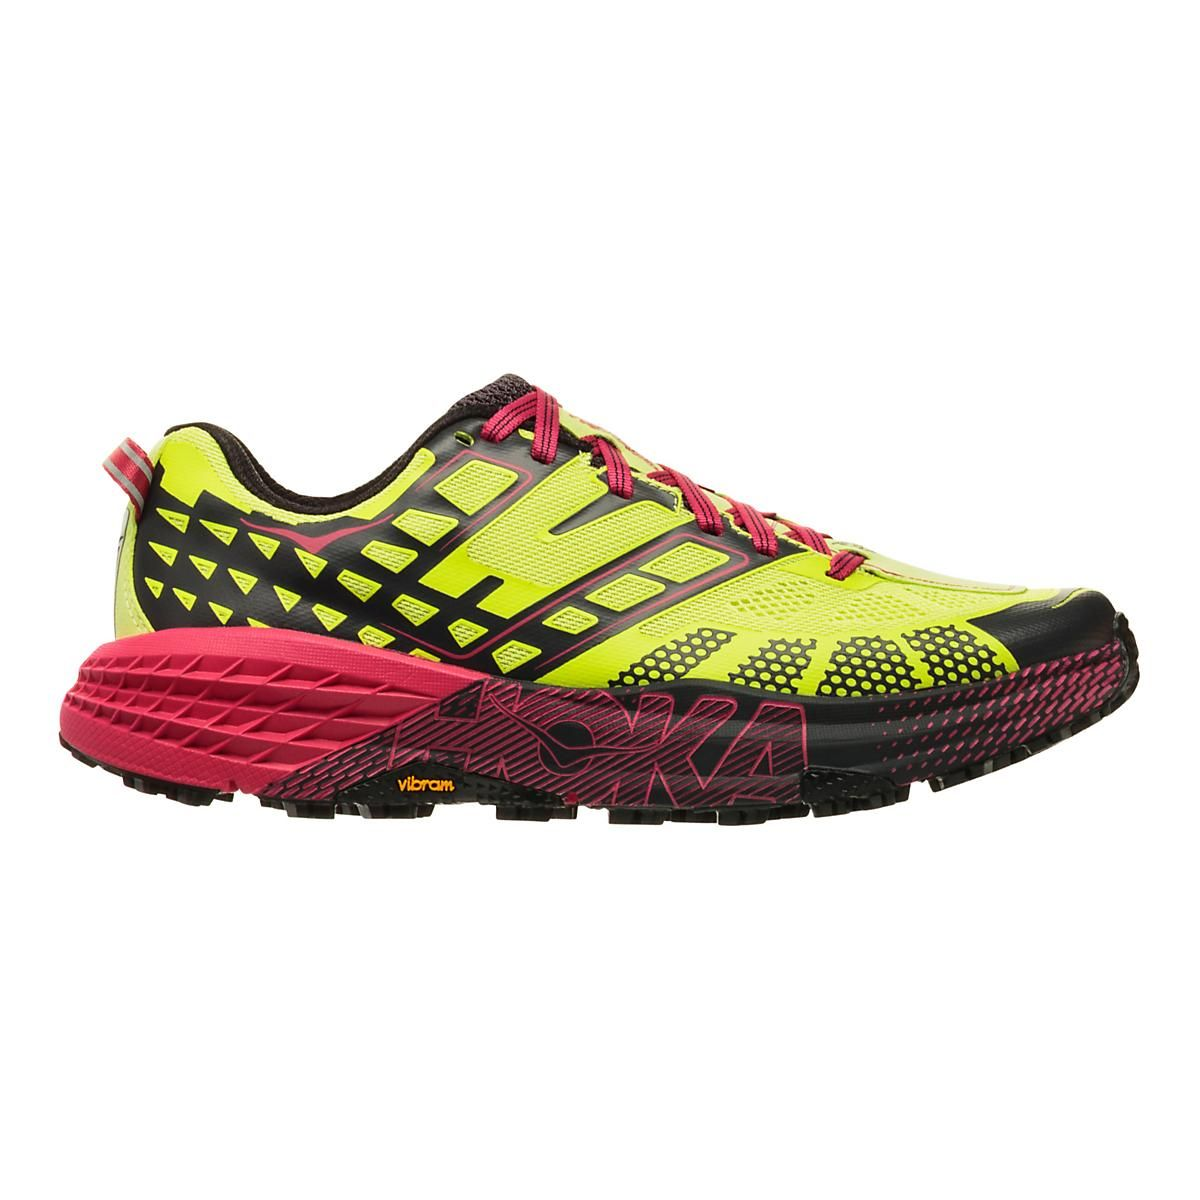 Speedgoat 2 Trail running shoes, Shoes, Running shoes